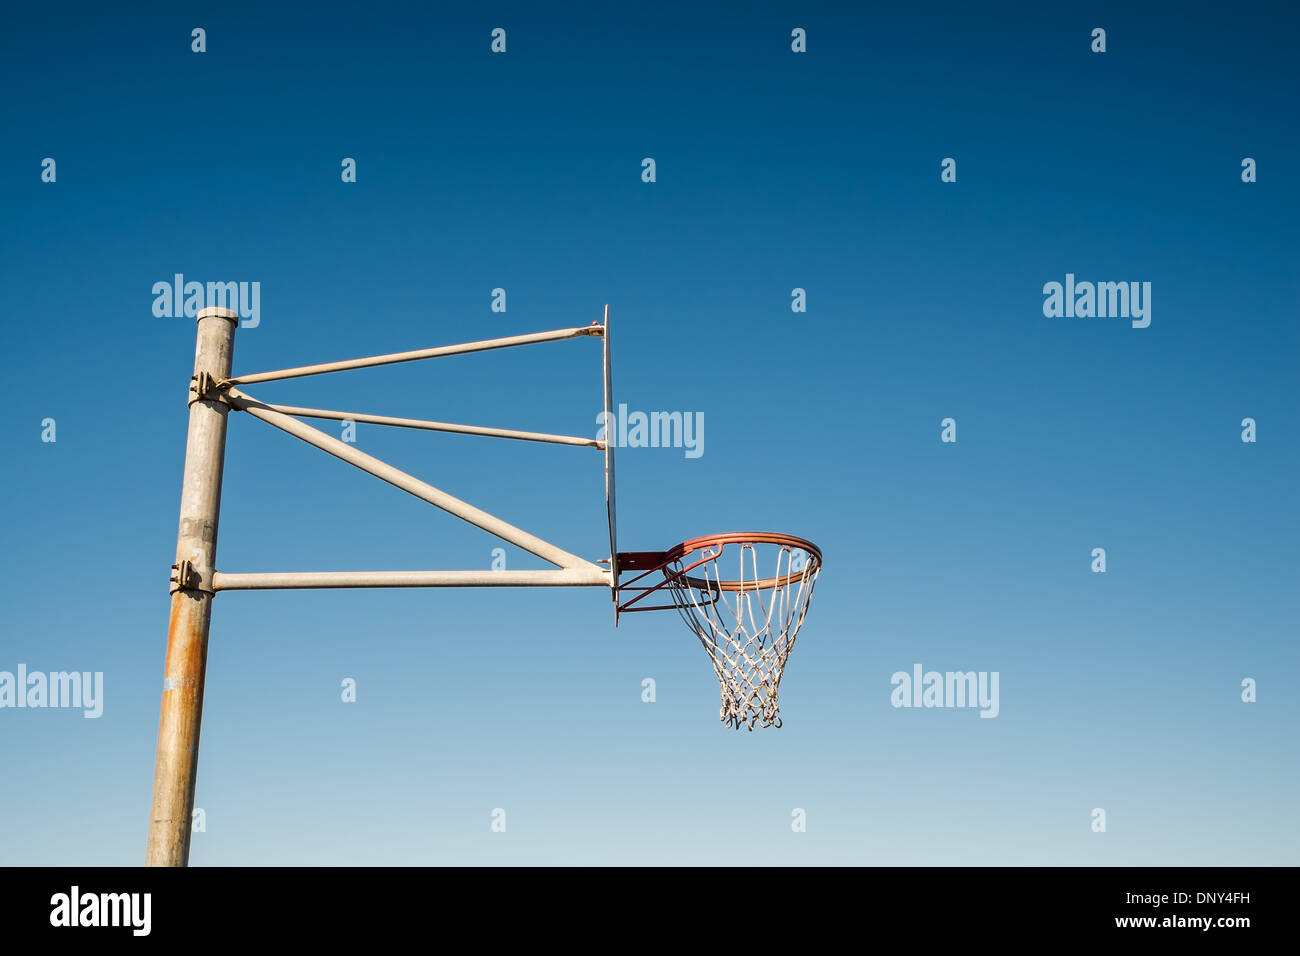 Side view of a basketball hoop against blue sky - Stock Image